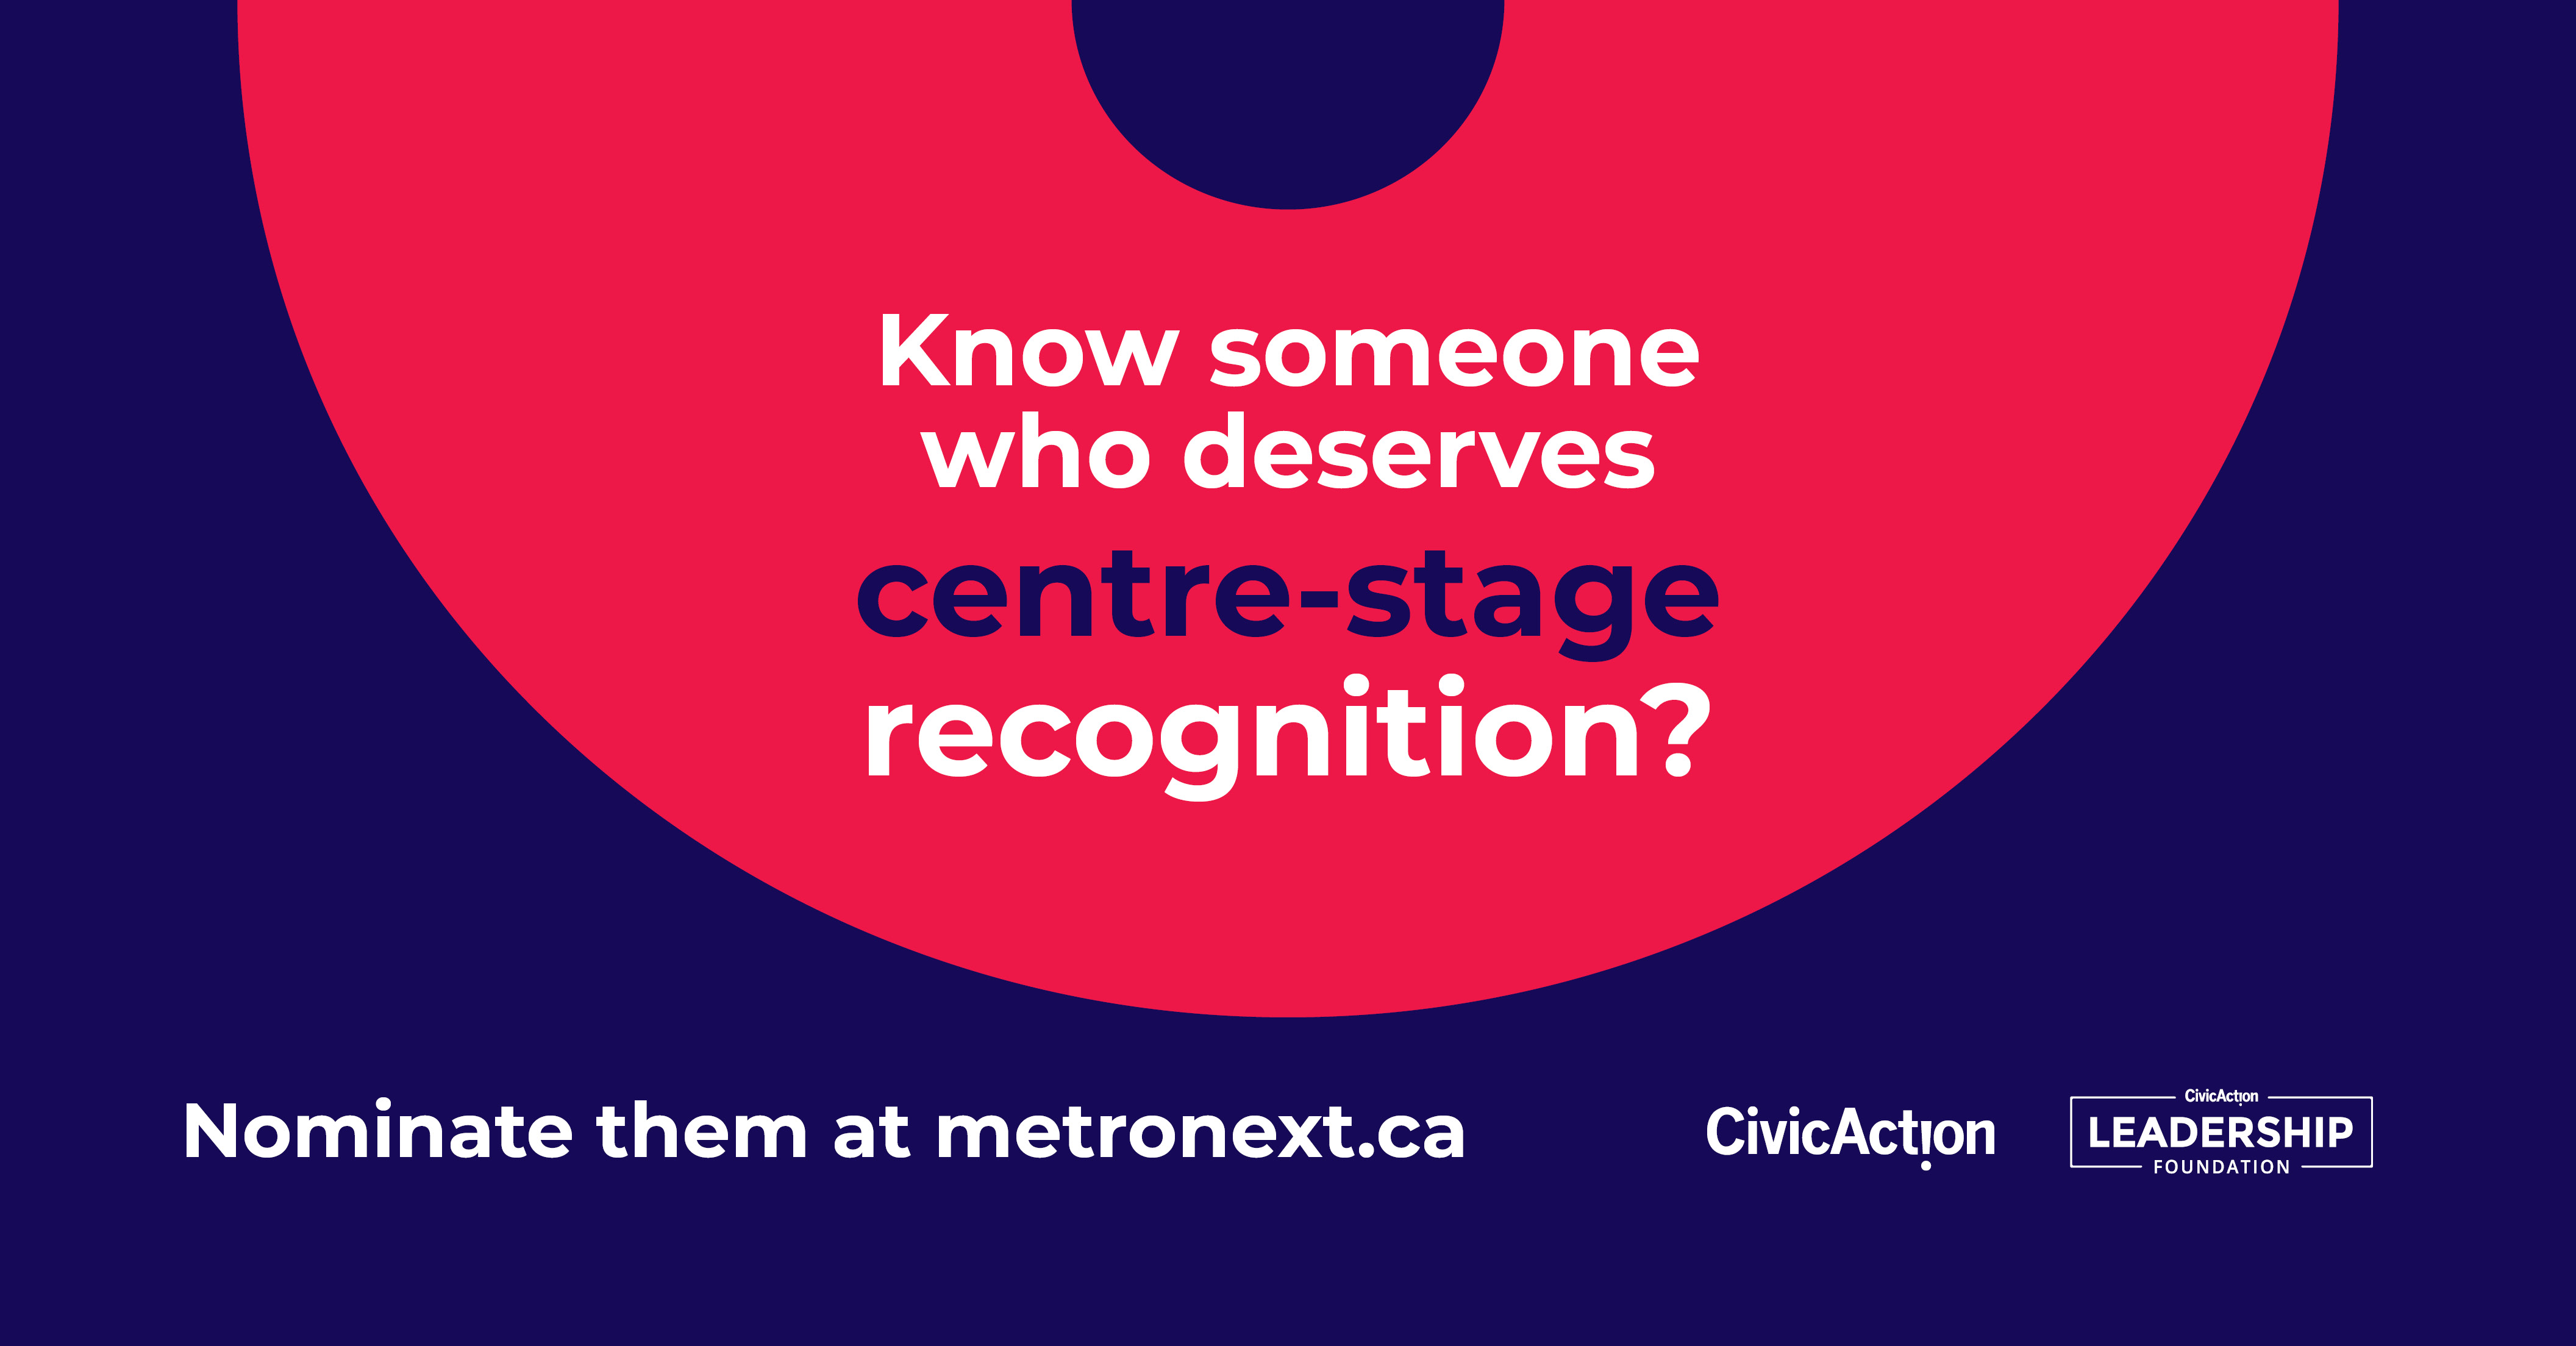 "Dark purple background with half a circle in pink and text that reads, ""Know someone who deserves centre-stage recognition? Nominate them at metronext.ca."" With the CivicAction logo in the bottom right."